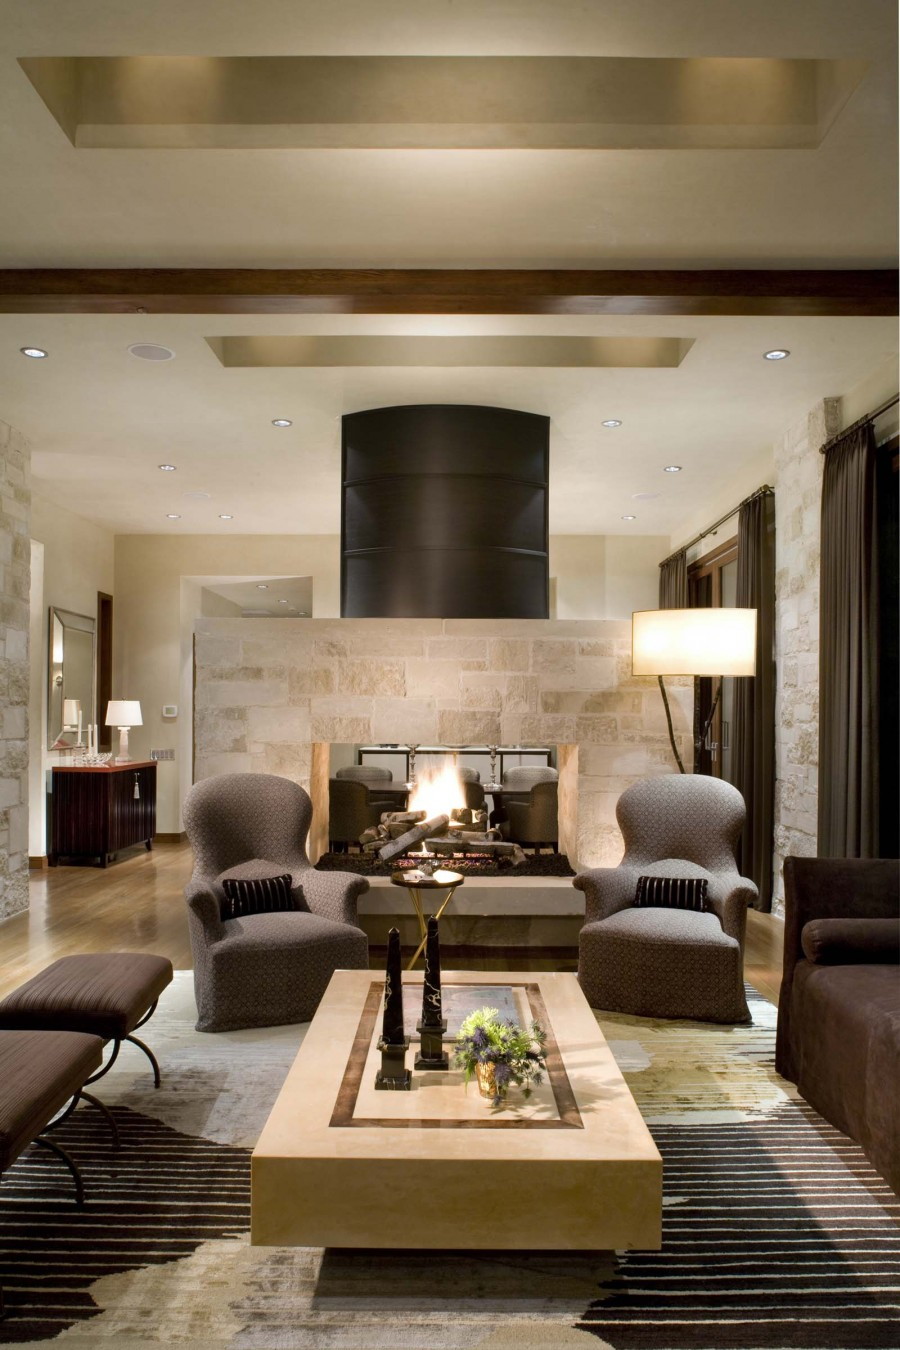 16 fabulous earth tones living room designs decoholic for Simple modern interior design